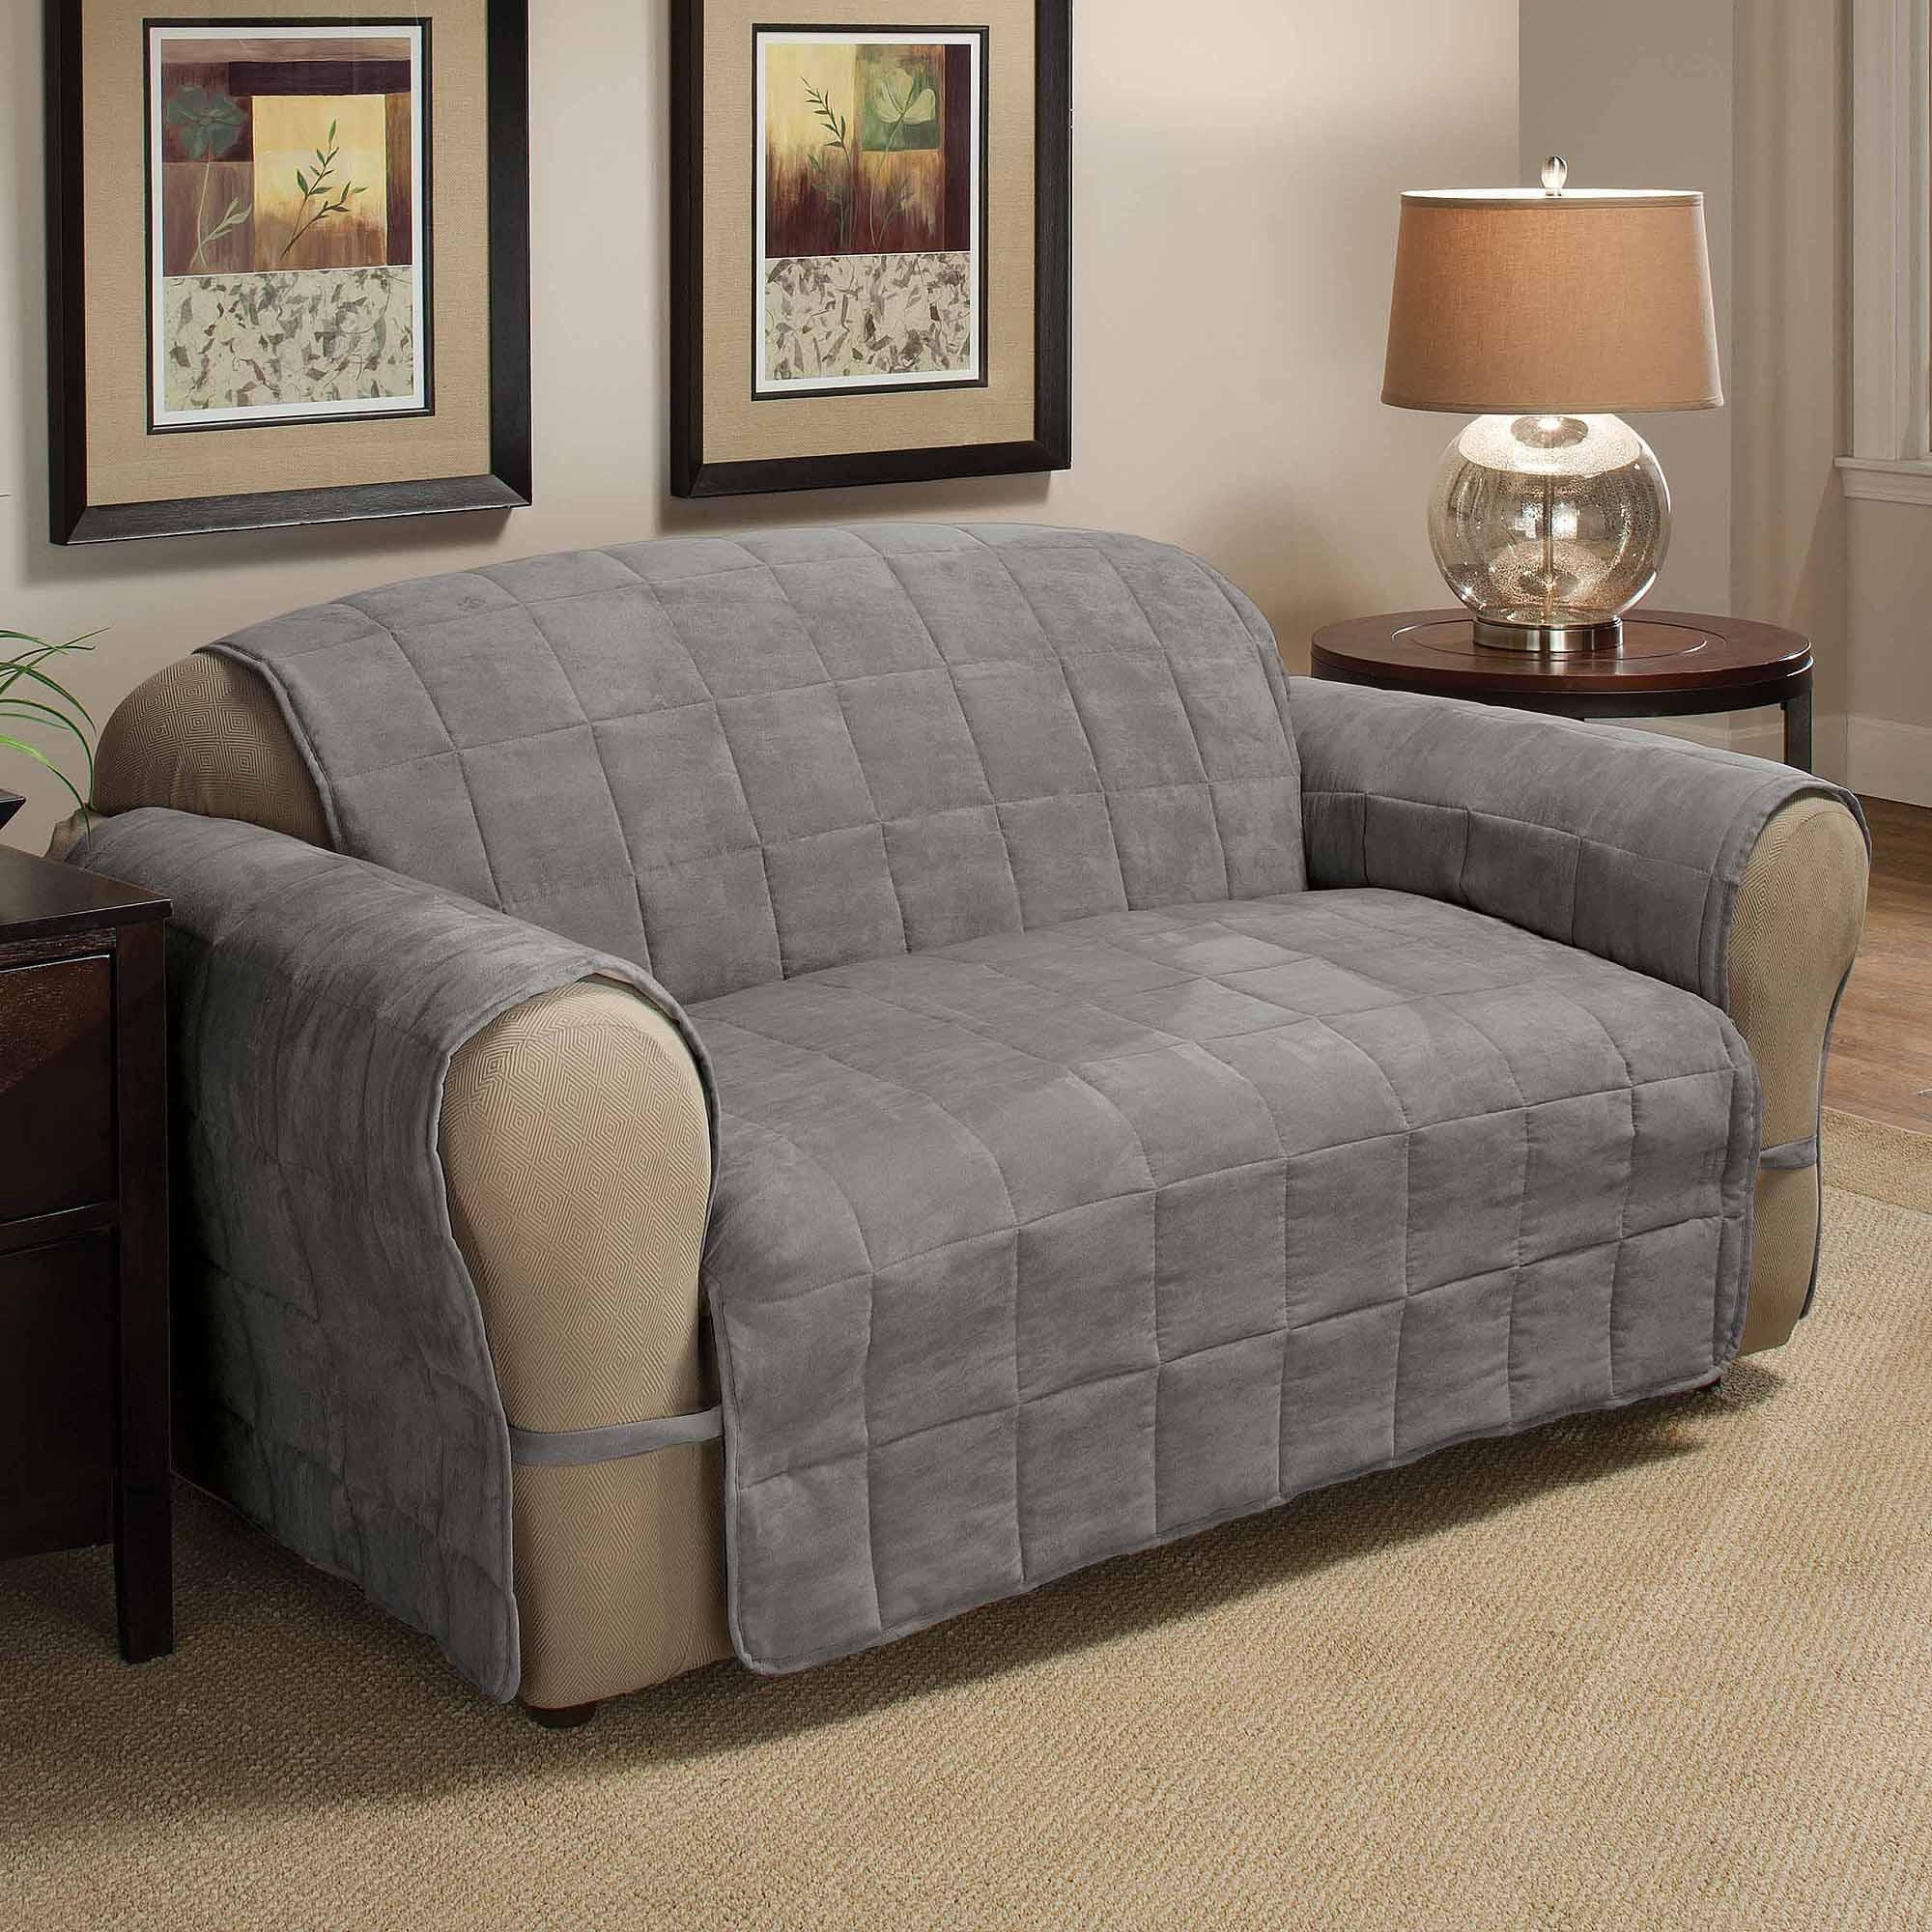 Innovative Textile Solutions Suede Ultimate Furniture Protectors for Suede Slipcovers for Sofas